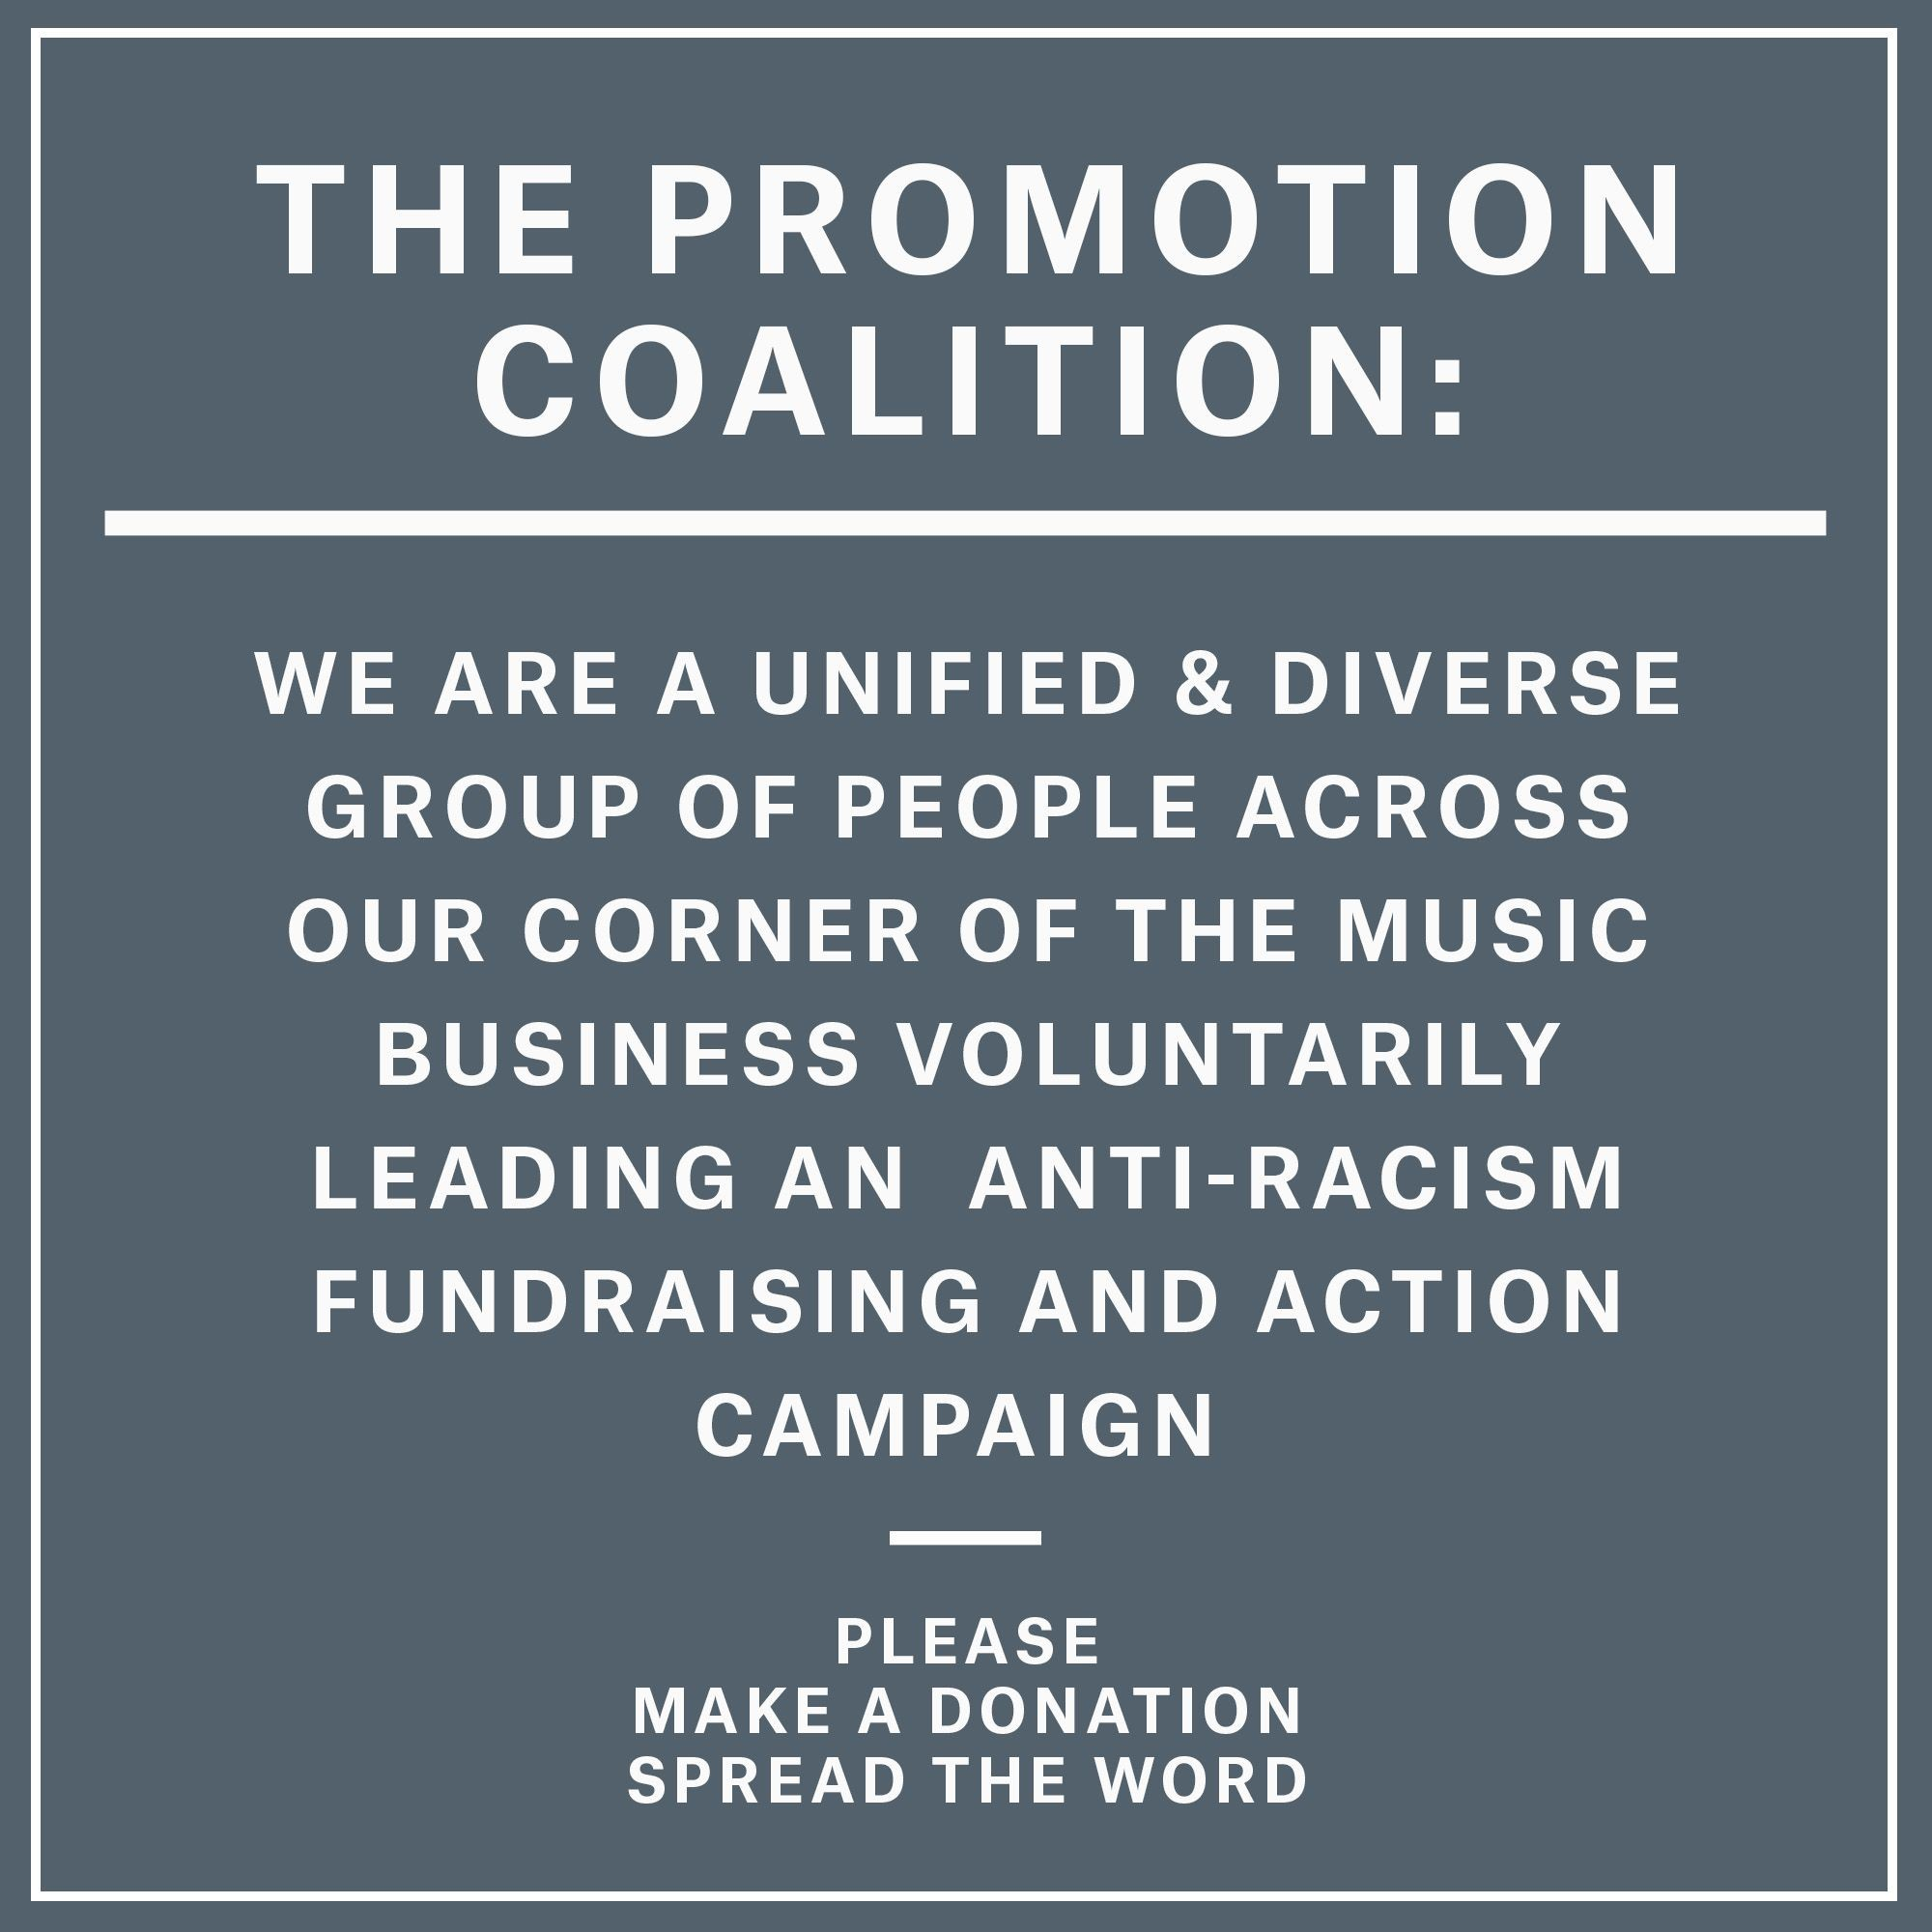 promtion coalition